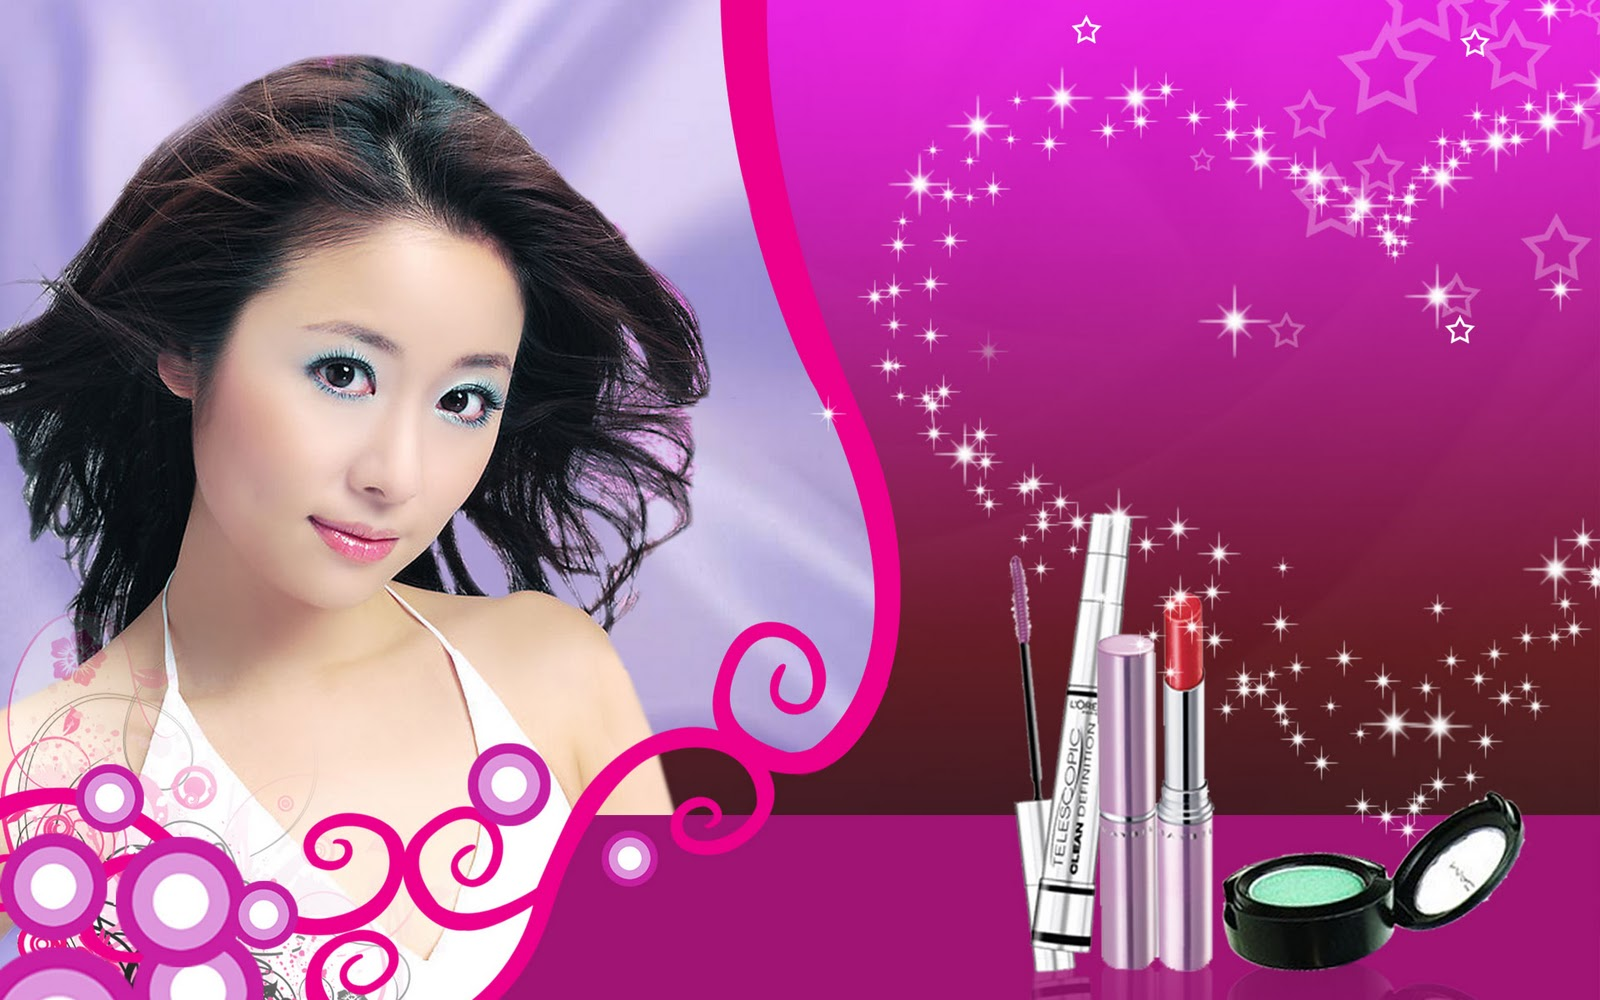 photo and wallpapers cosmetics advertising wallpapers